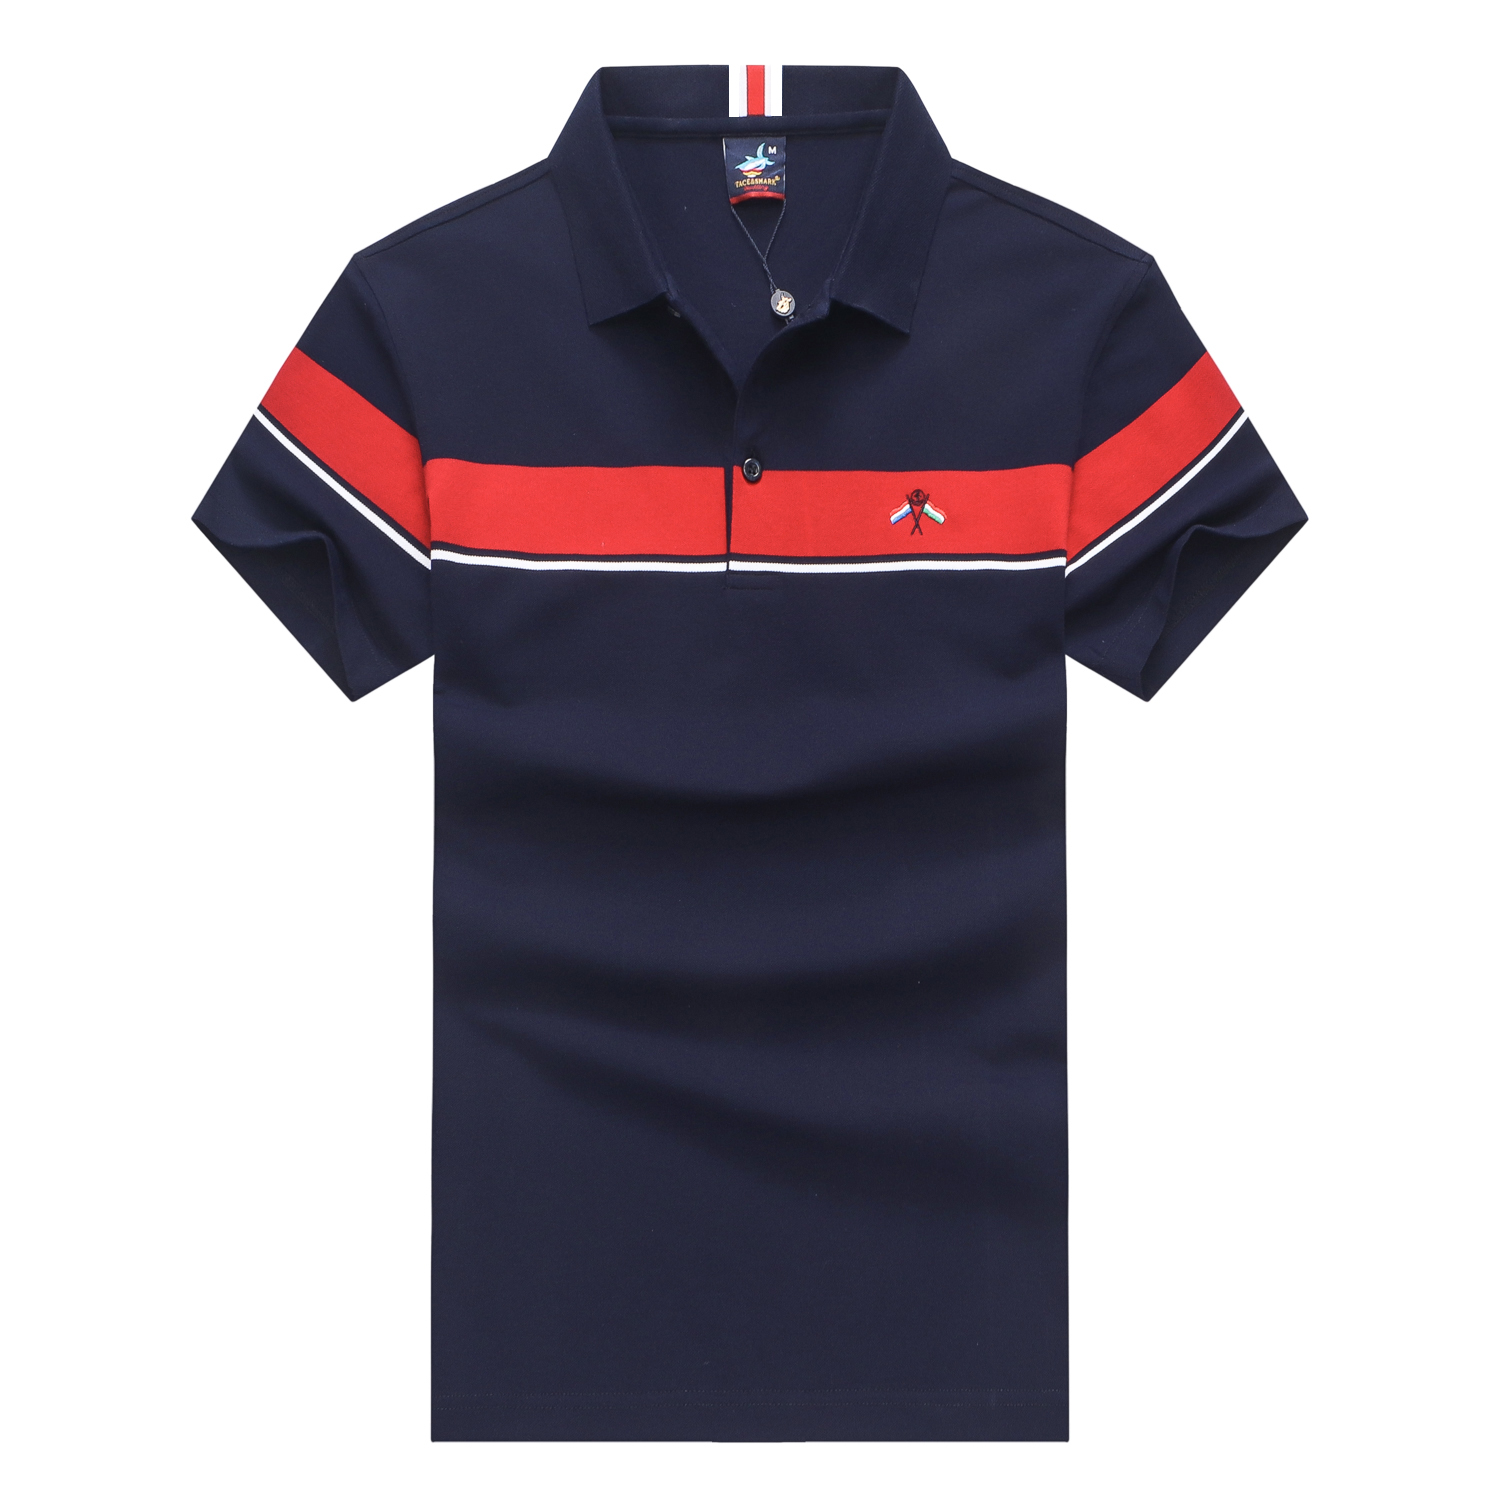 2019 Summer short sleeve   polo   shirt men casual fashion striped splice royal Tace & Shark   polo   men yachting lapel camisa   polo